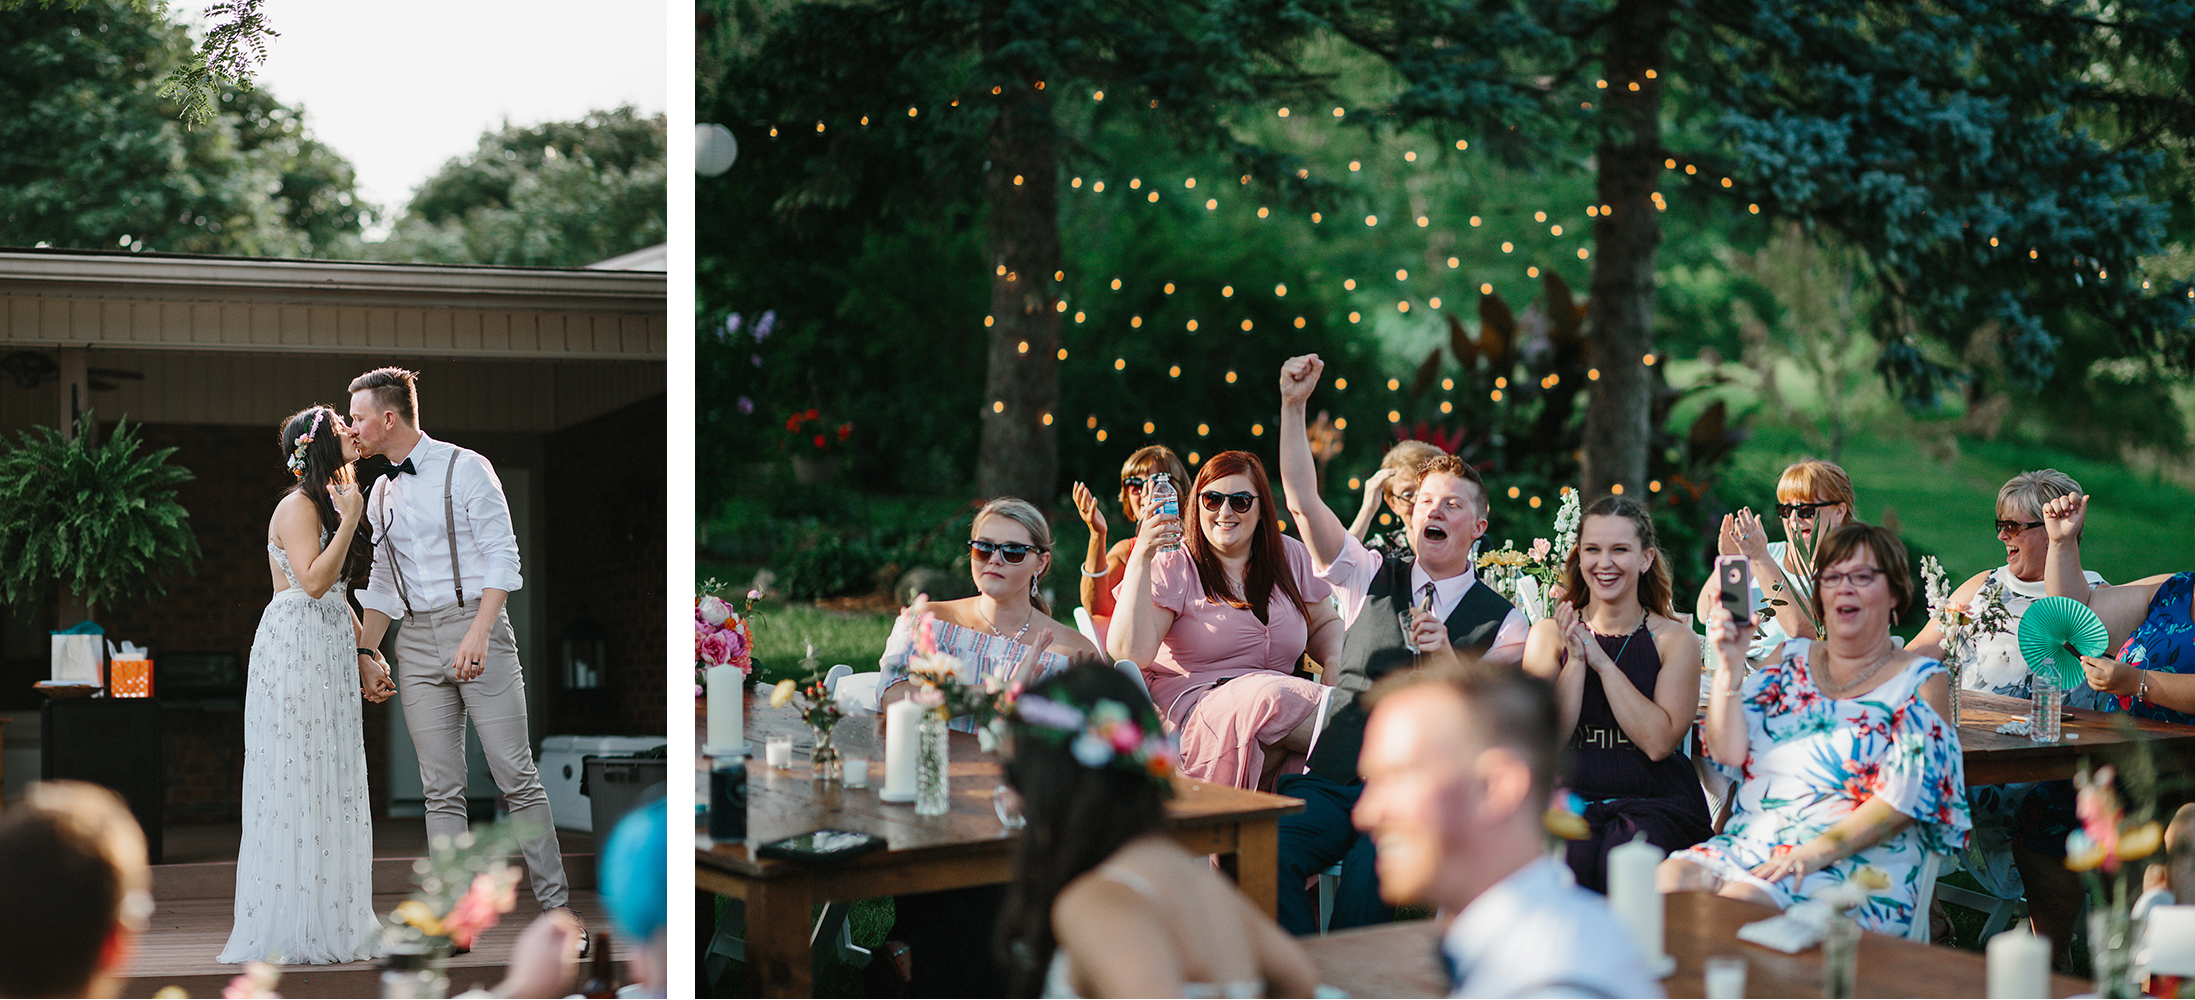 23-Backyard-toronto-film-photographer-ryanne-hollies-photography-diy-string-lights-and-lanterns-reception-dinner-documentary-wooden-harvest-tables-diy-decor-speeches-bride-and-grooms-speech-kiss.jpg